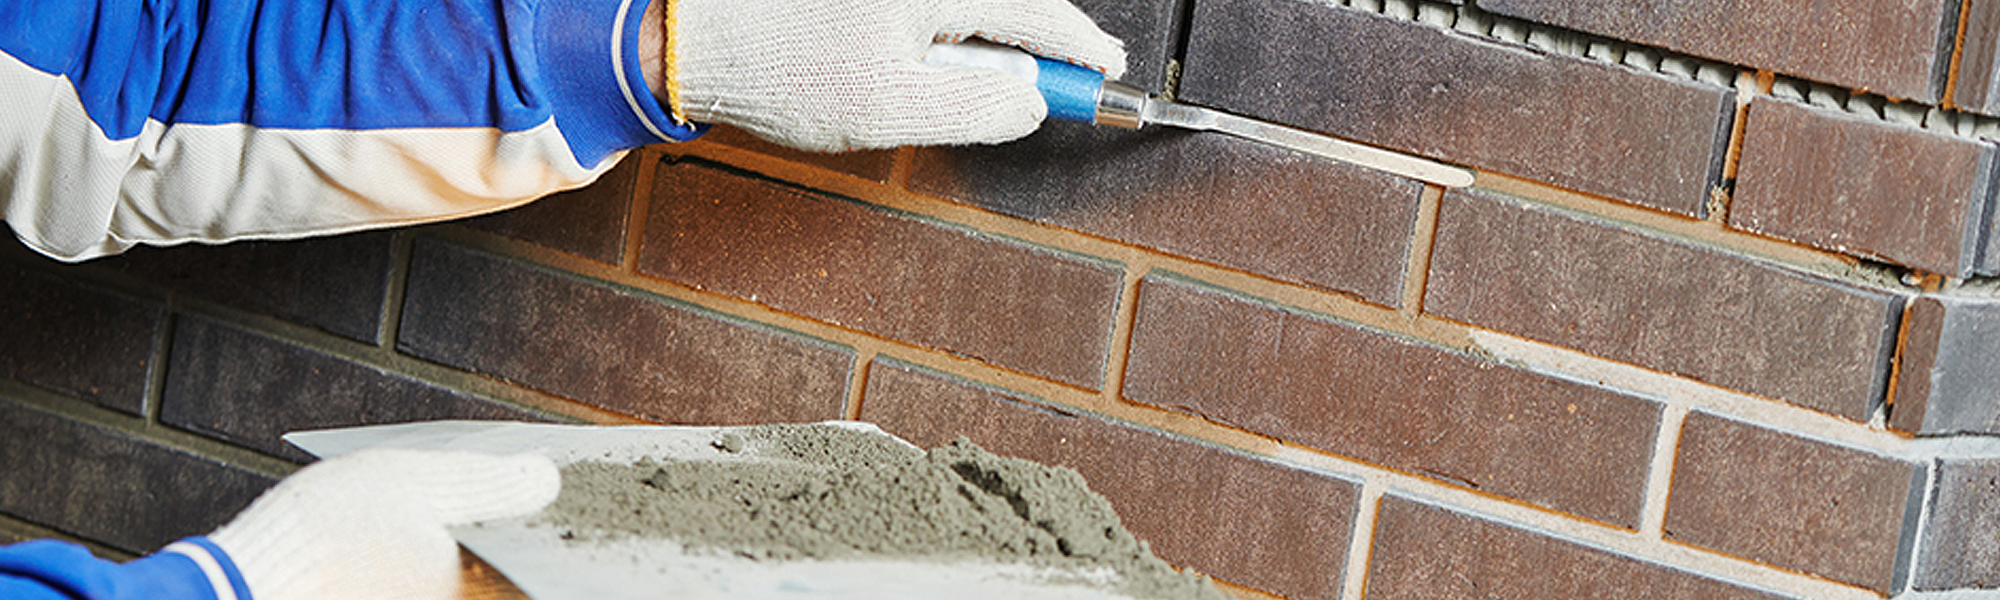 Professional Tuckpointing Brick Work Masonry Services In